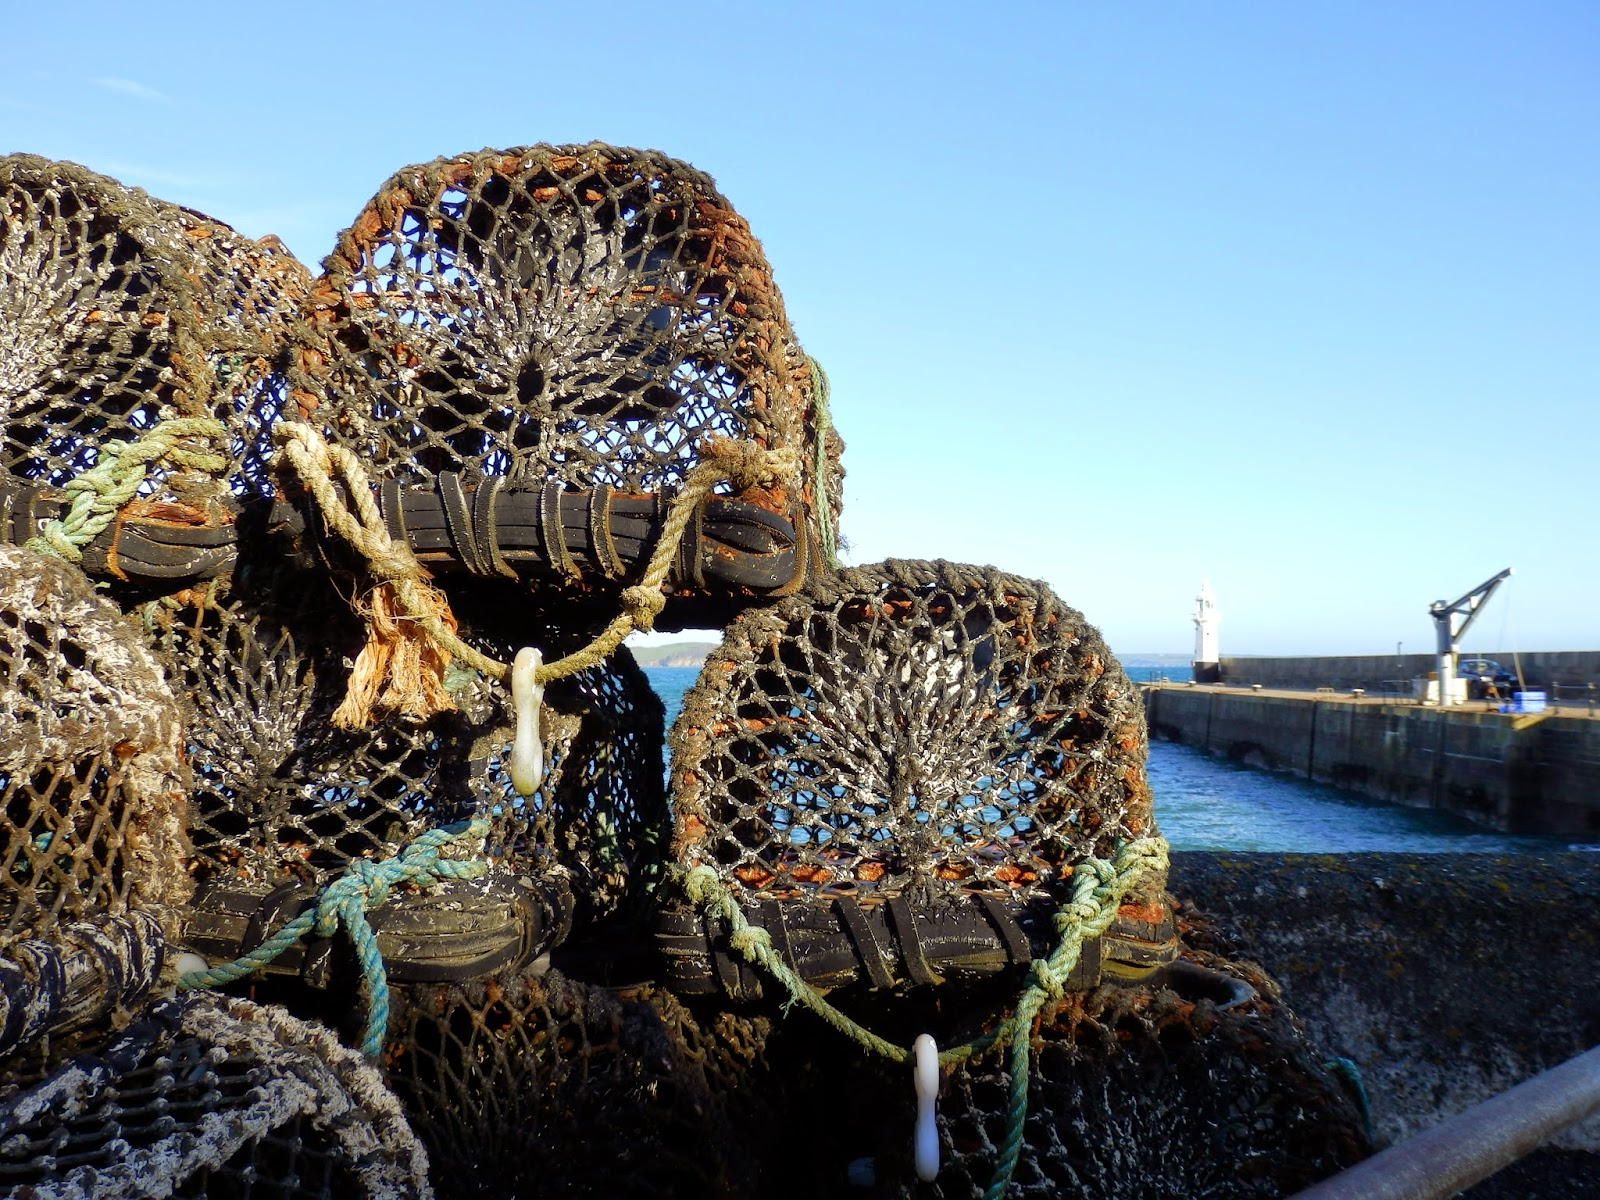 Lobster Pots in Cornwall